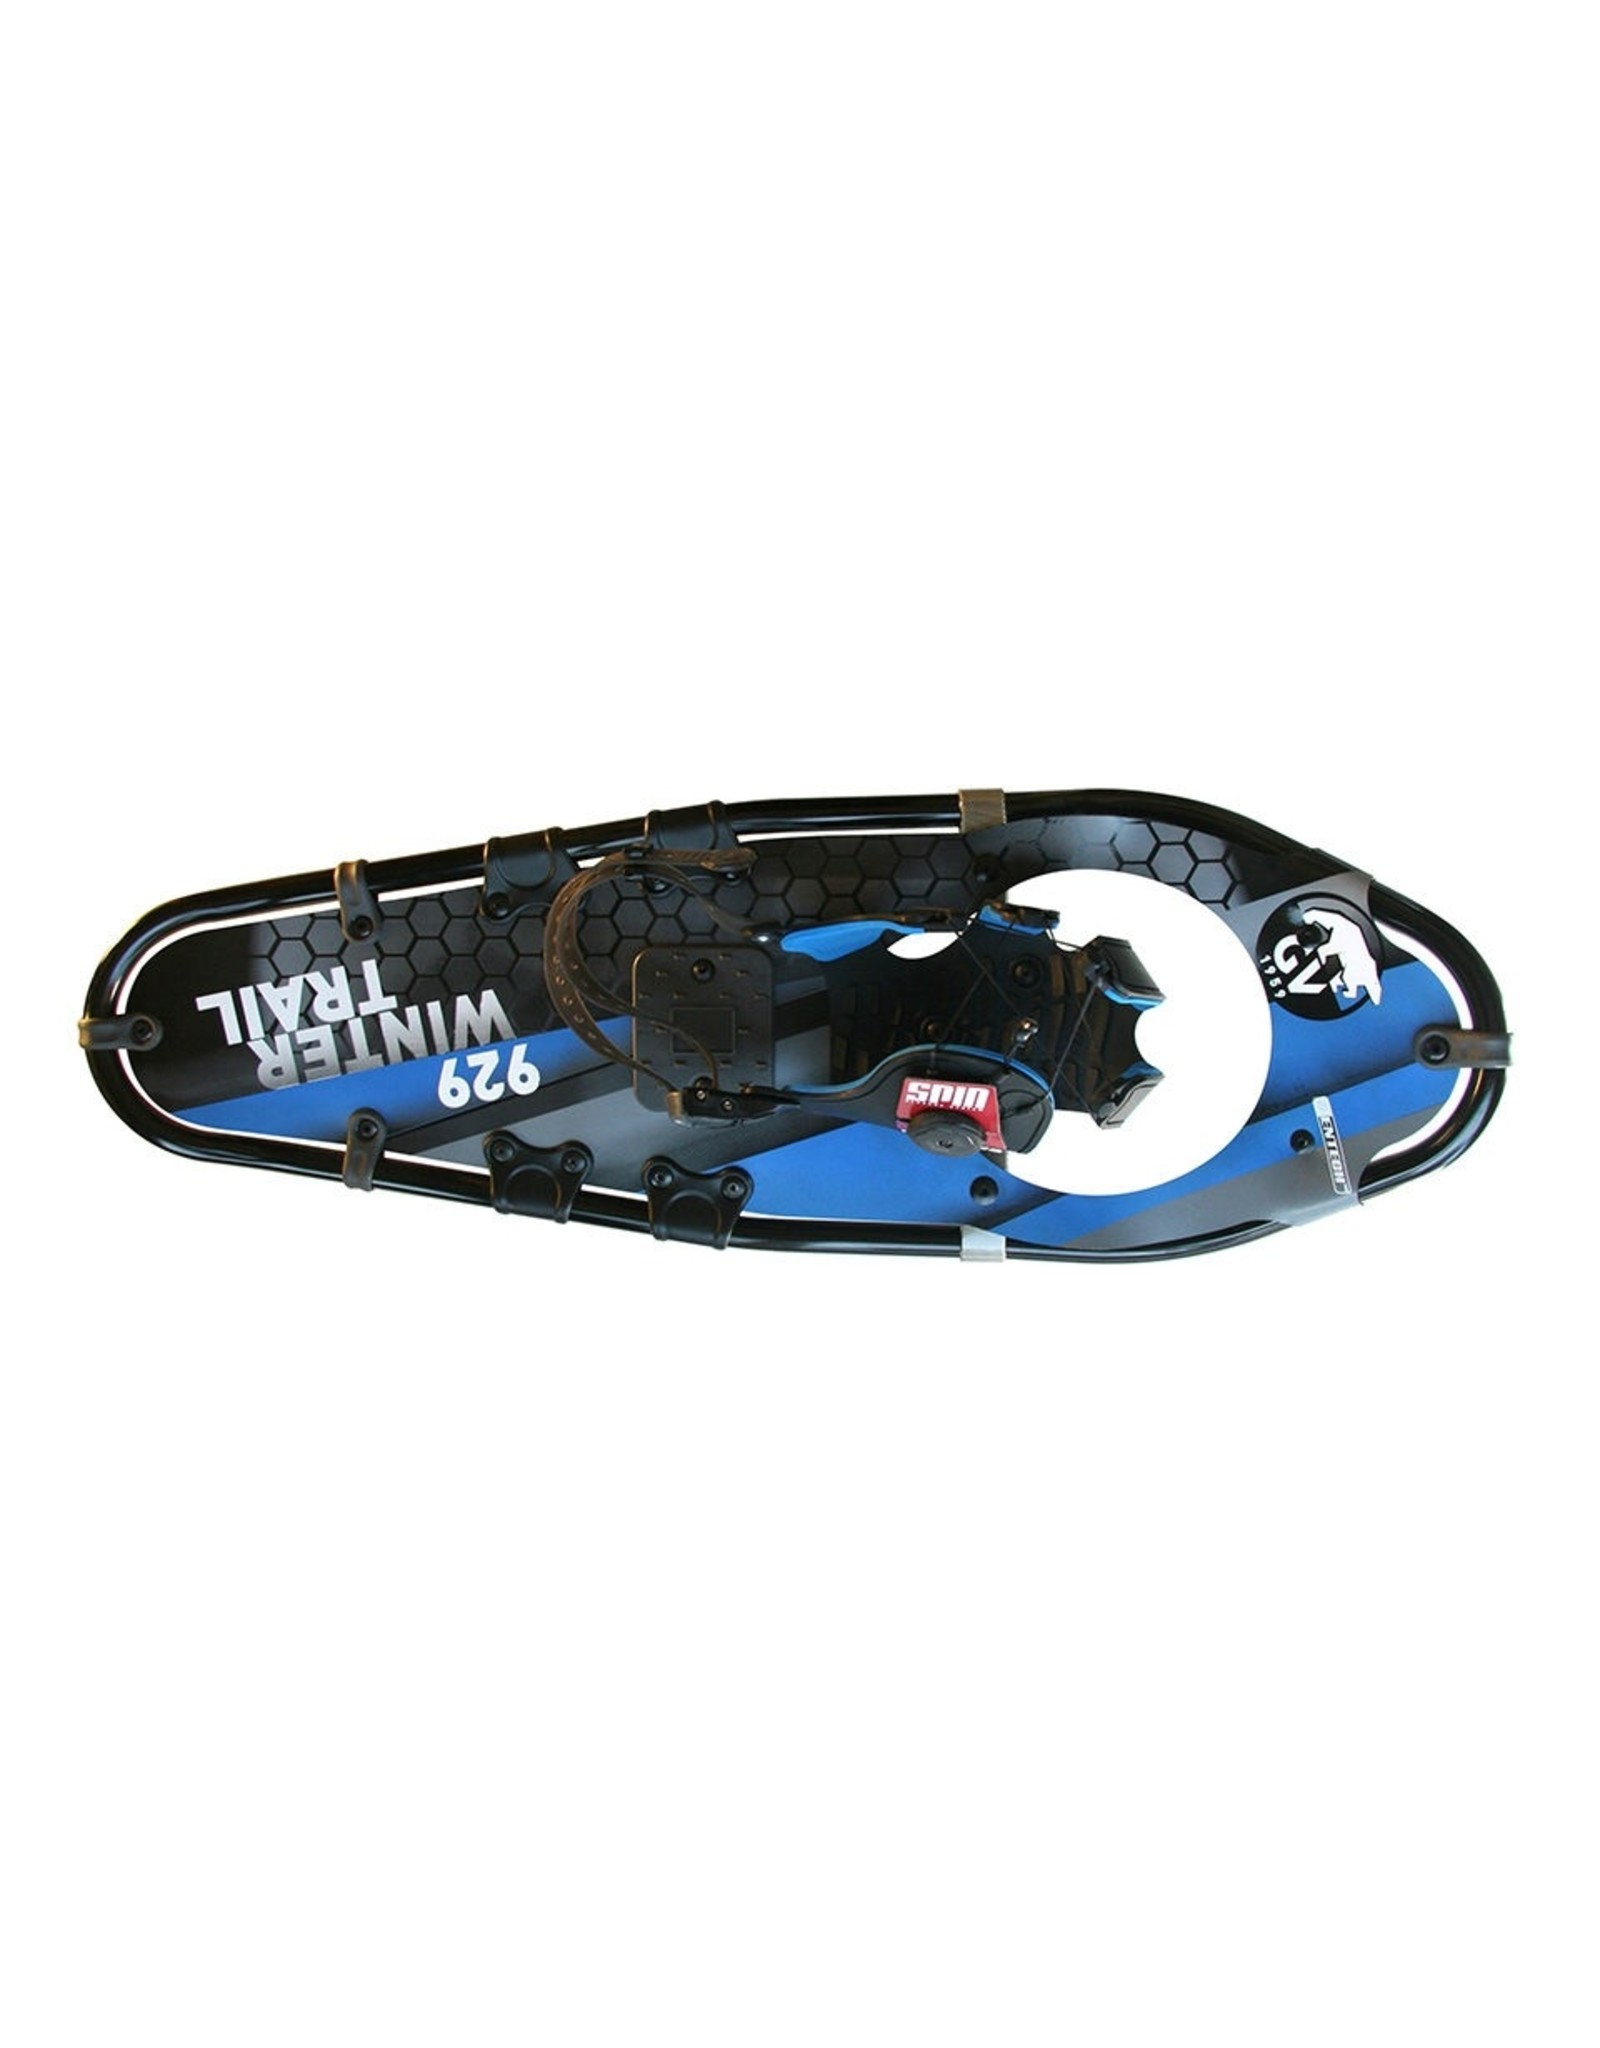 GV GV Trail Spin Snowshoe's